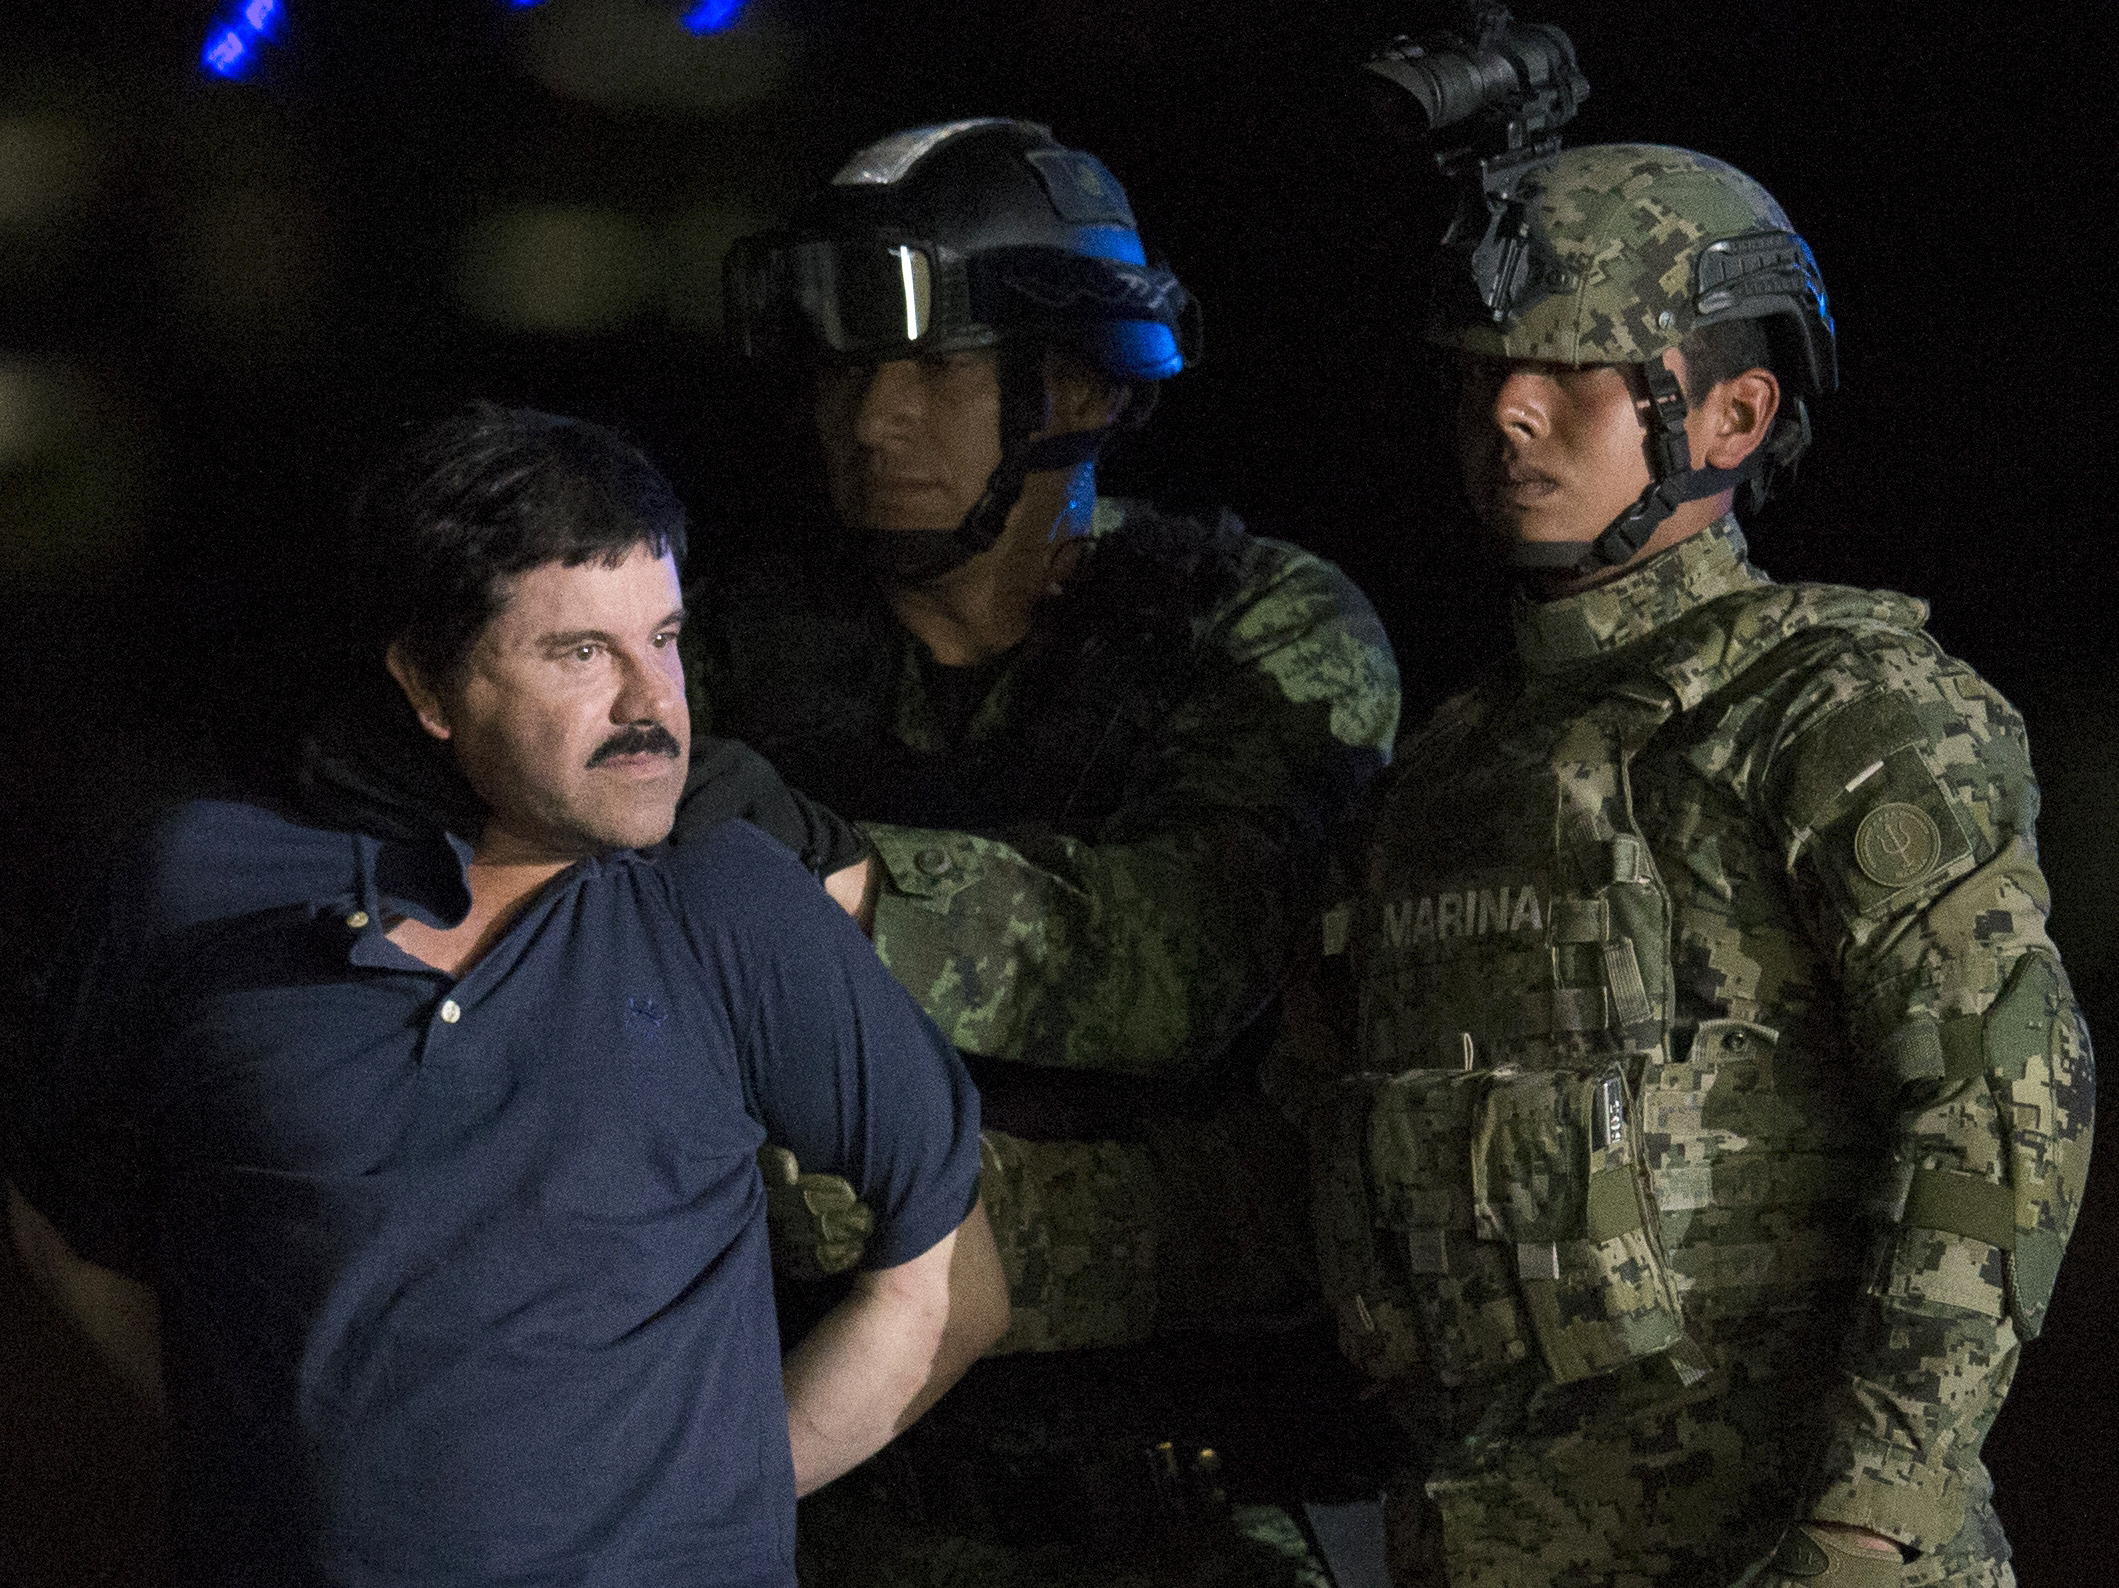 Joaquin Guzman El Chapo is taken to a federal hangar in Mexico by Mexican army soldiers in 2016.